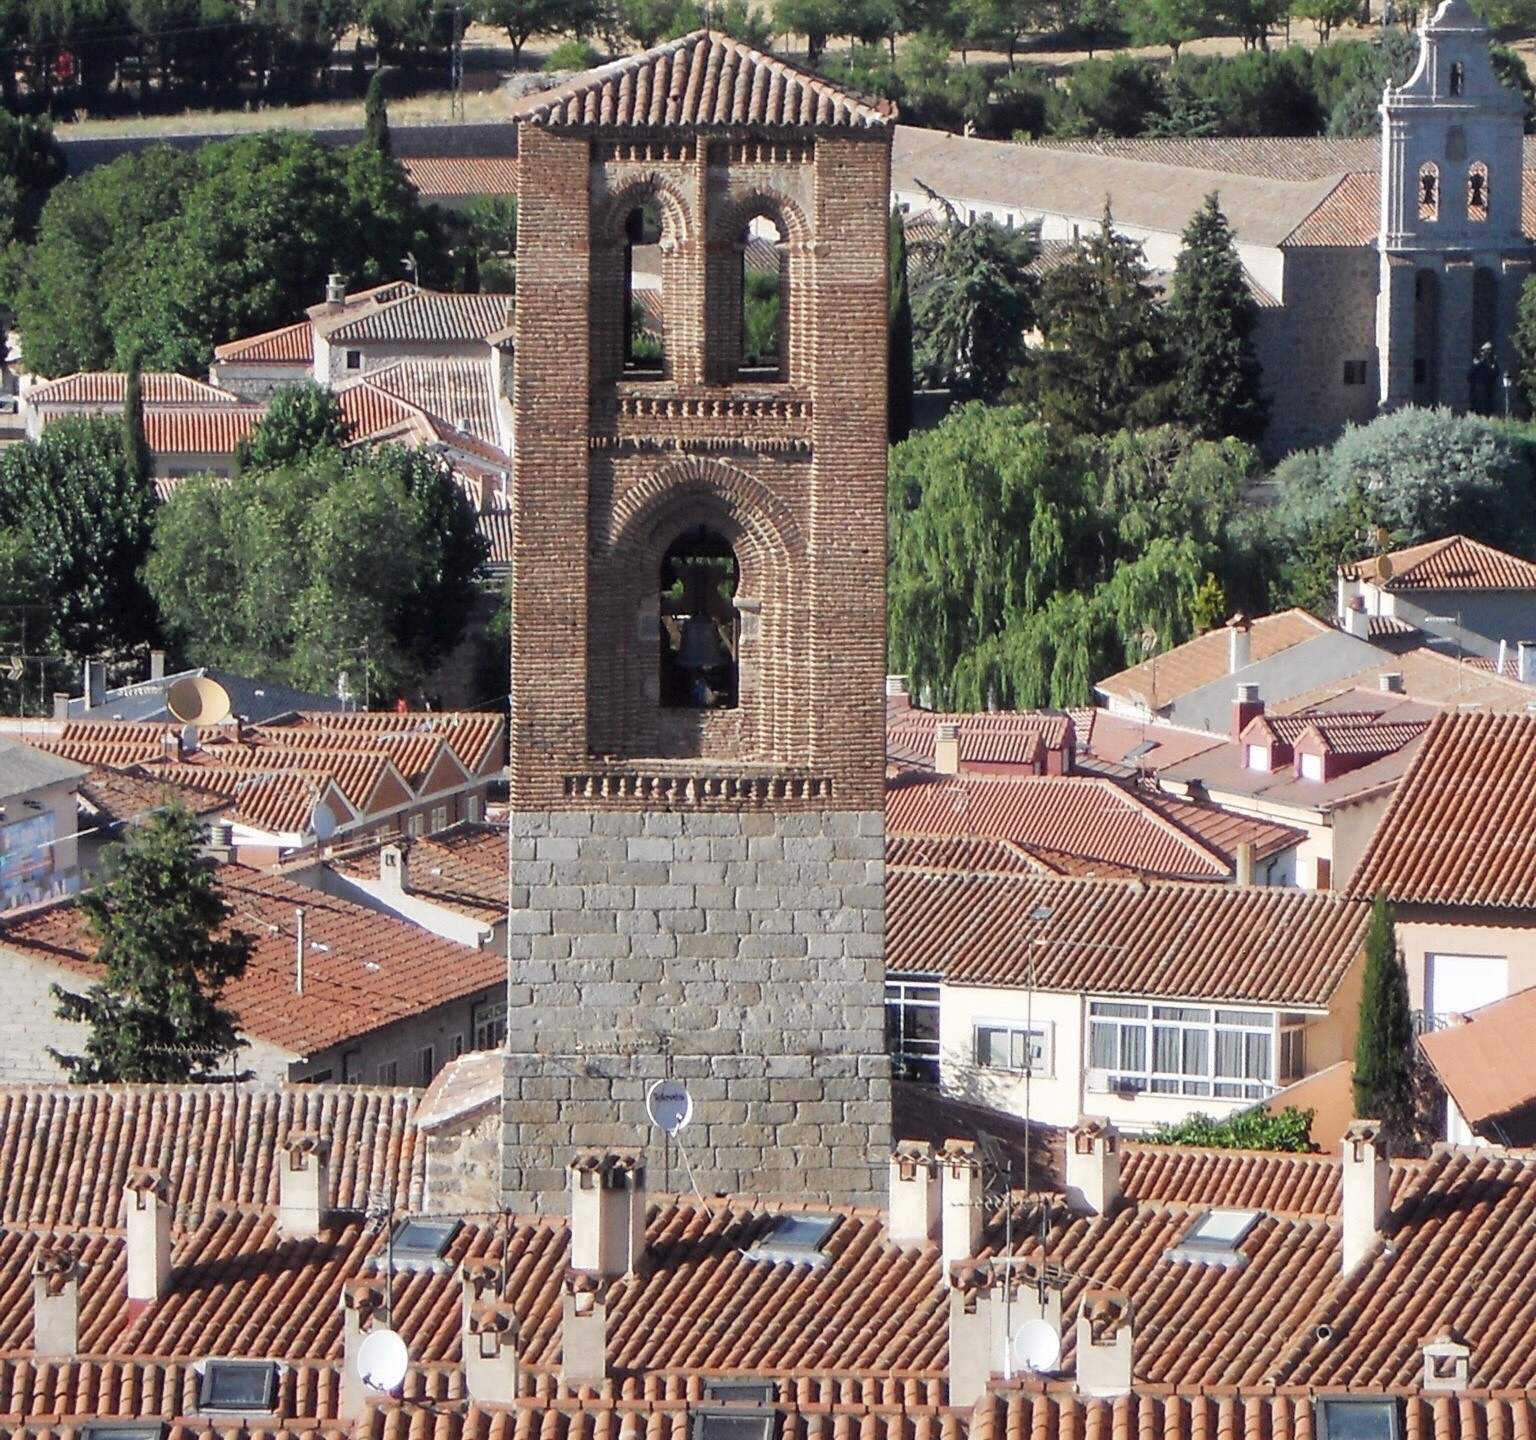 View from Ávila Walls